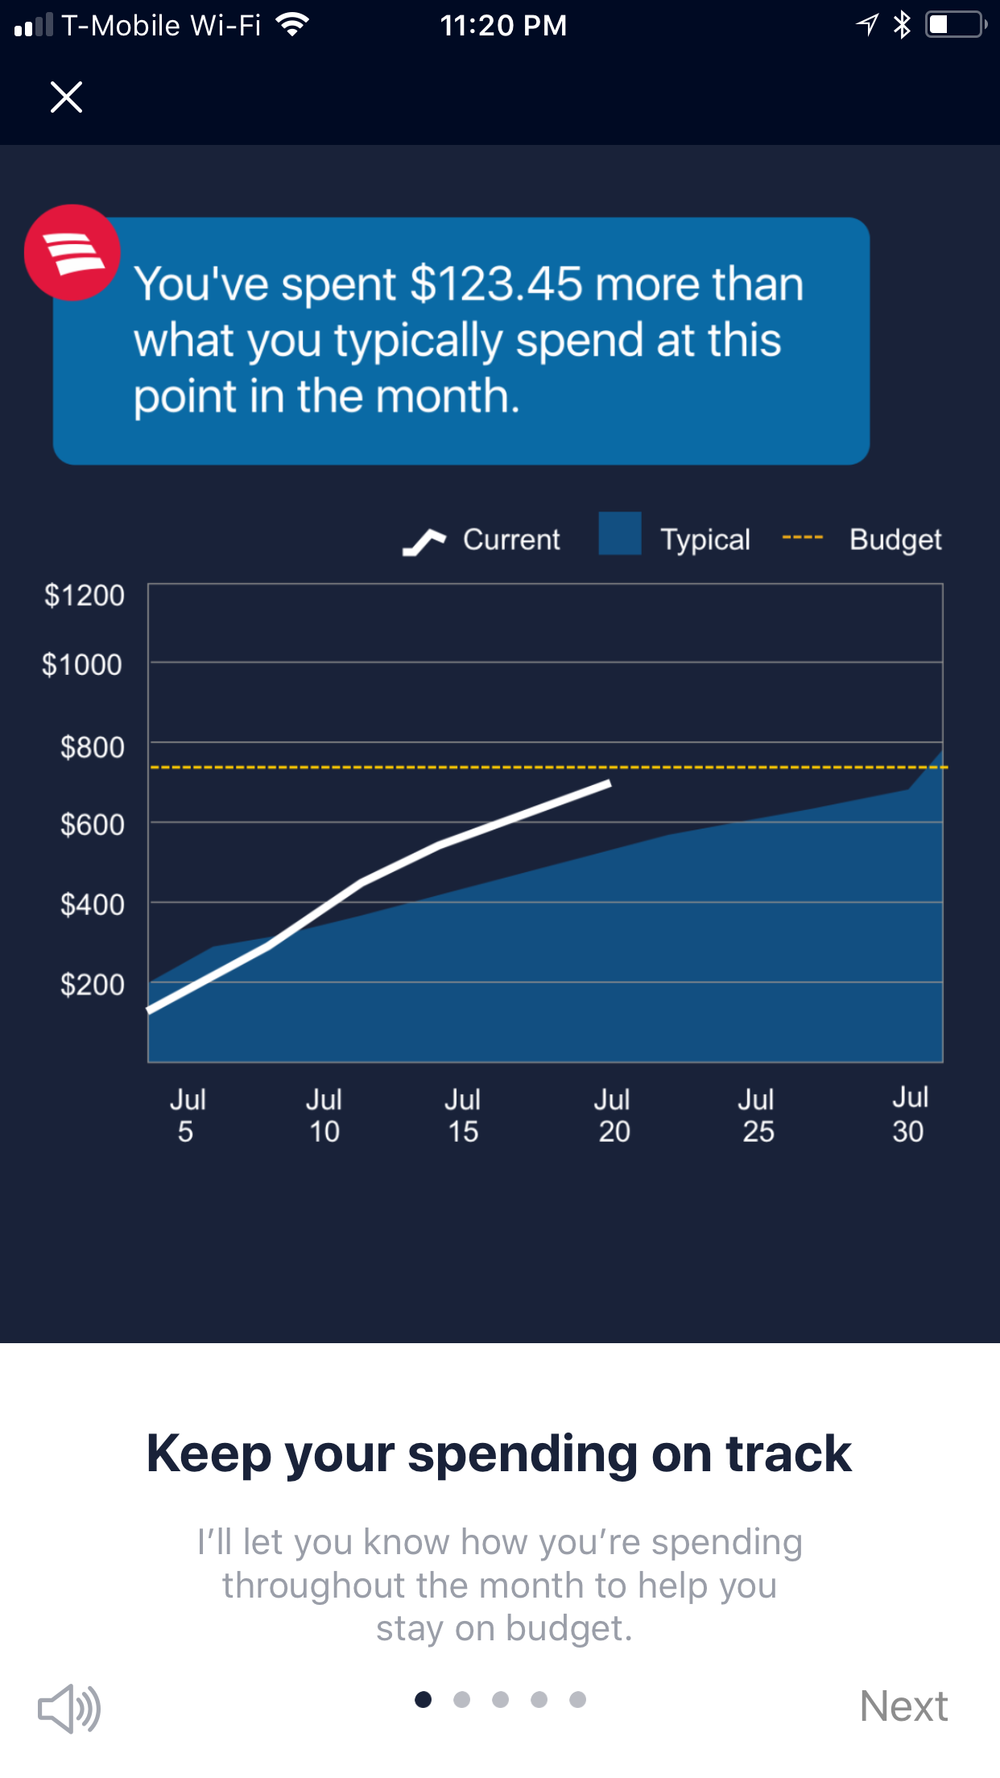 Onboarding   - Erica provides insights to help user keep track of spending.